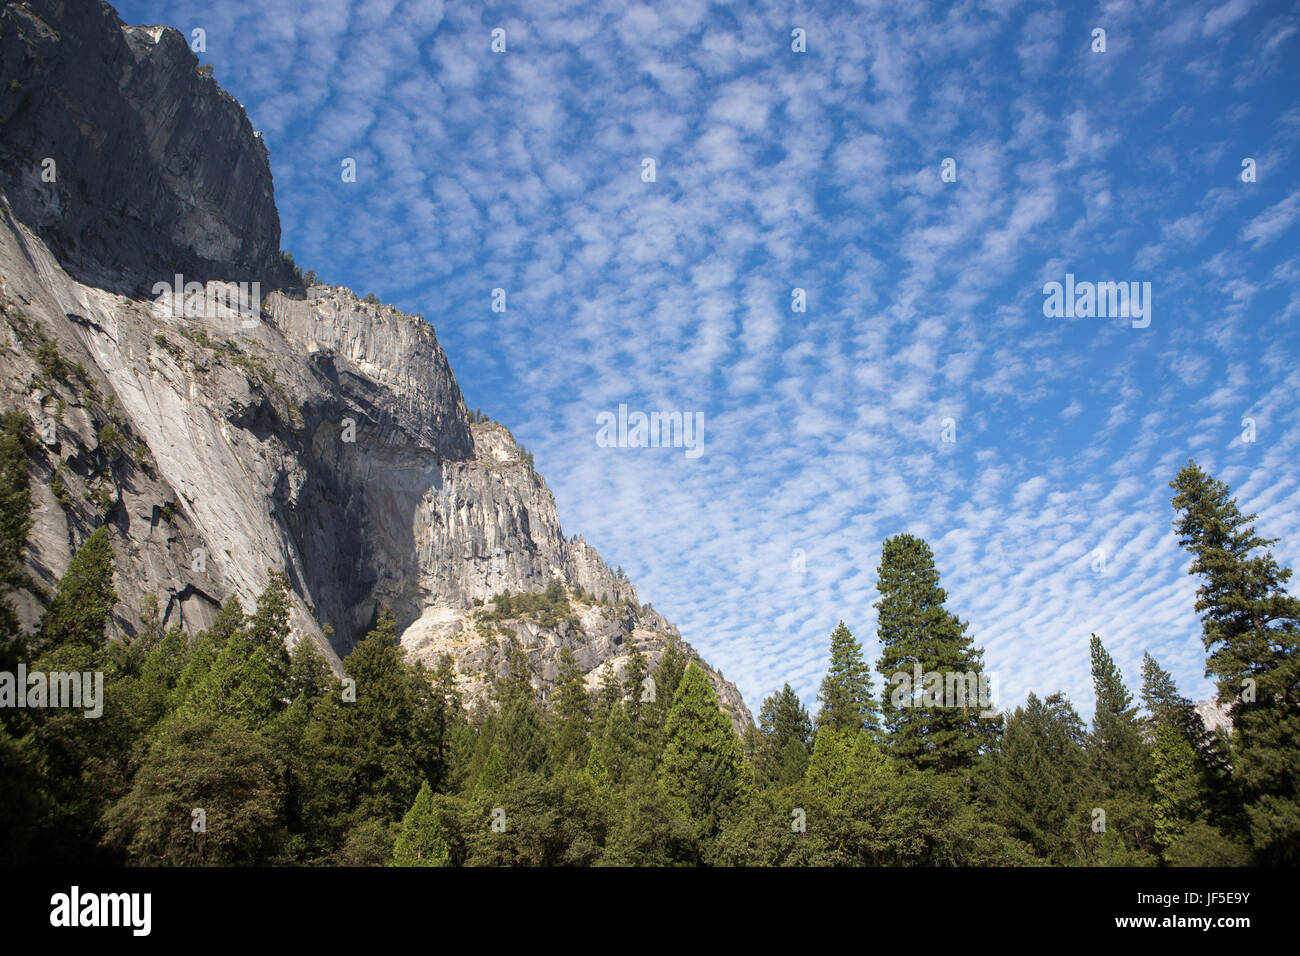 Clouds fill a bright blue sky over the Yosemite Valley. - Stock Image